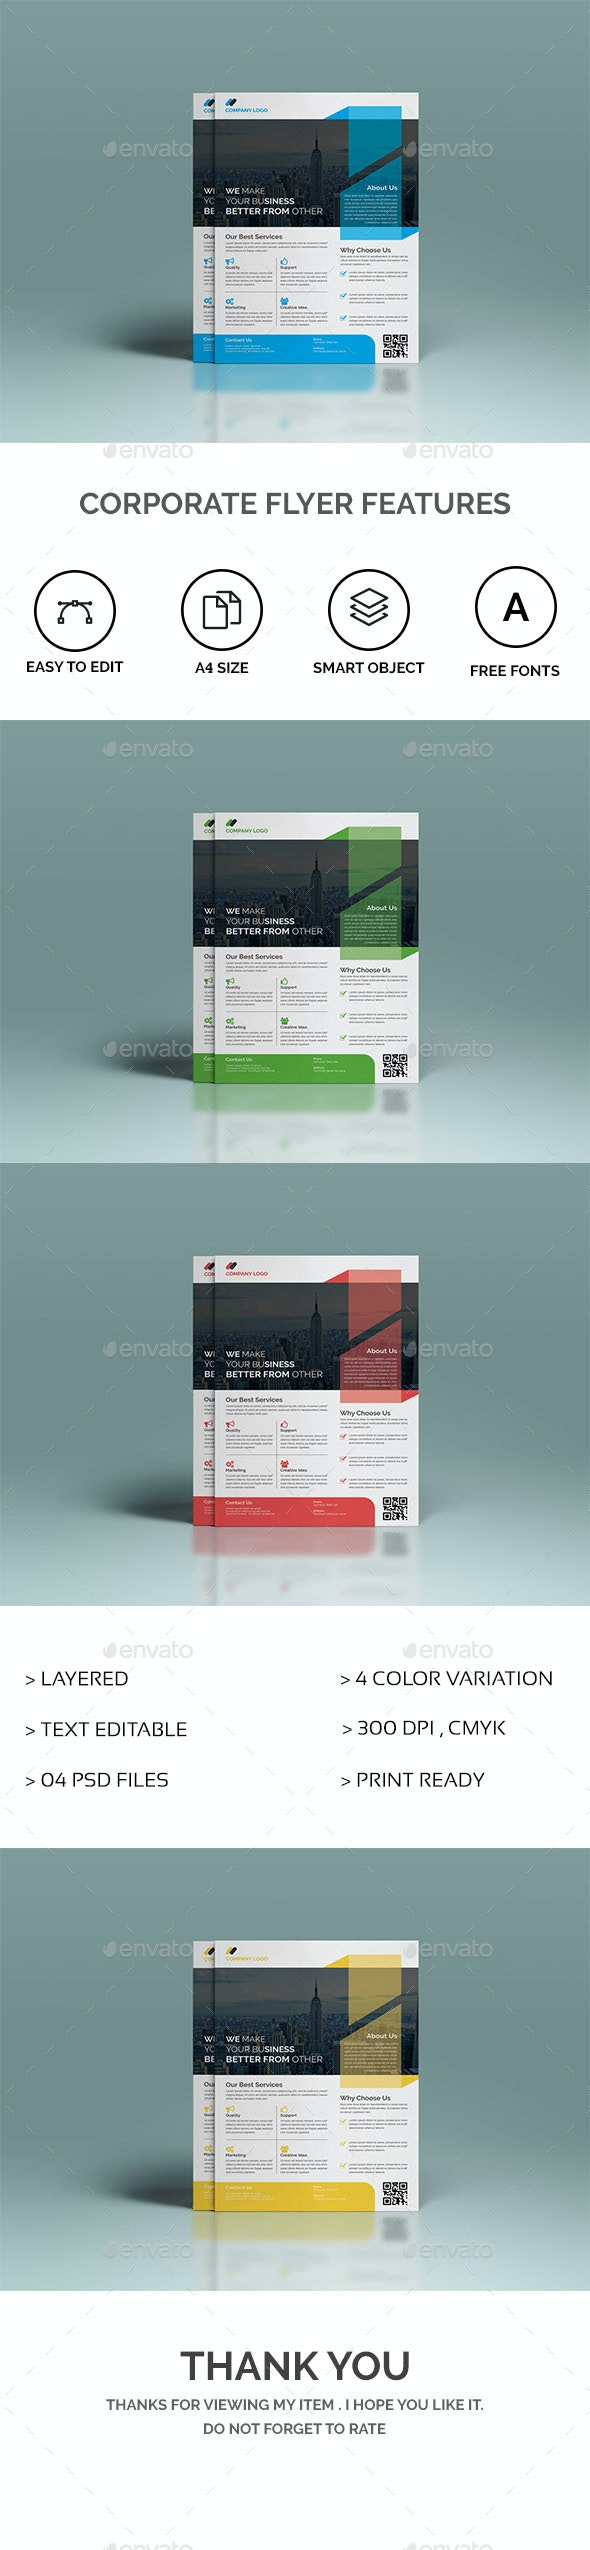 Corporate Flyer Features - Corporate Flyers